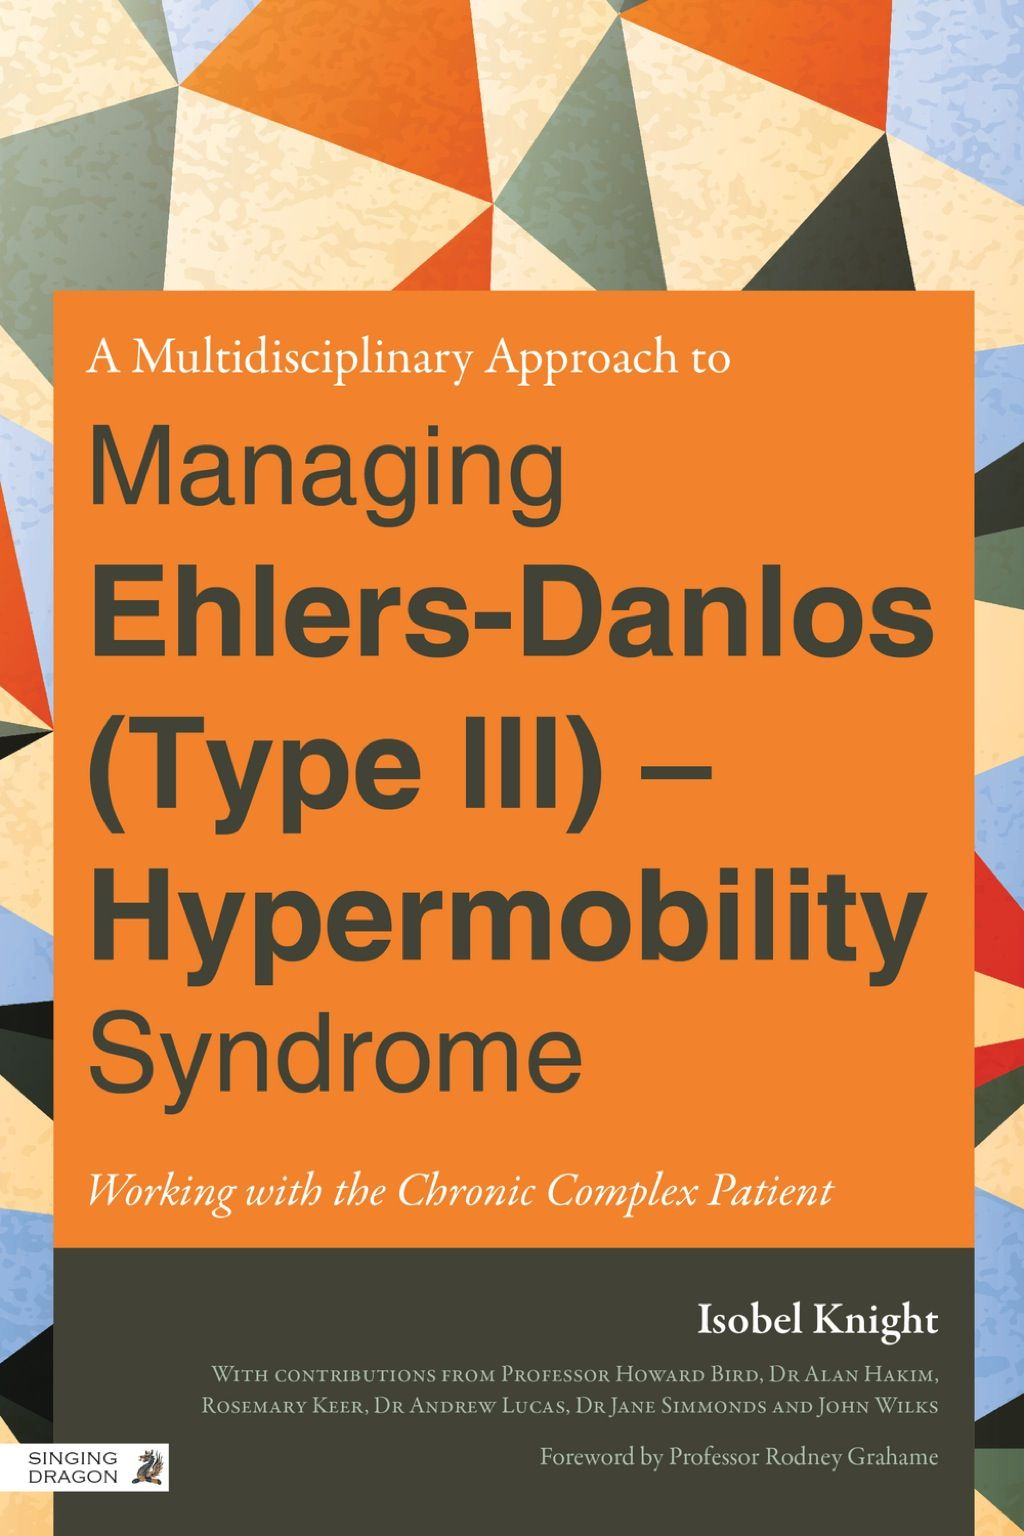 A Multidisciplinary Approach to Managing EhlersDanlos